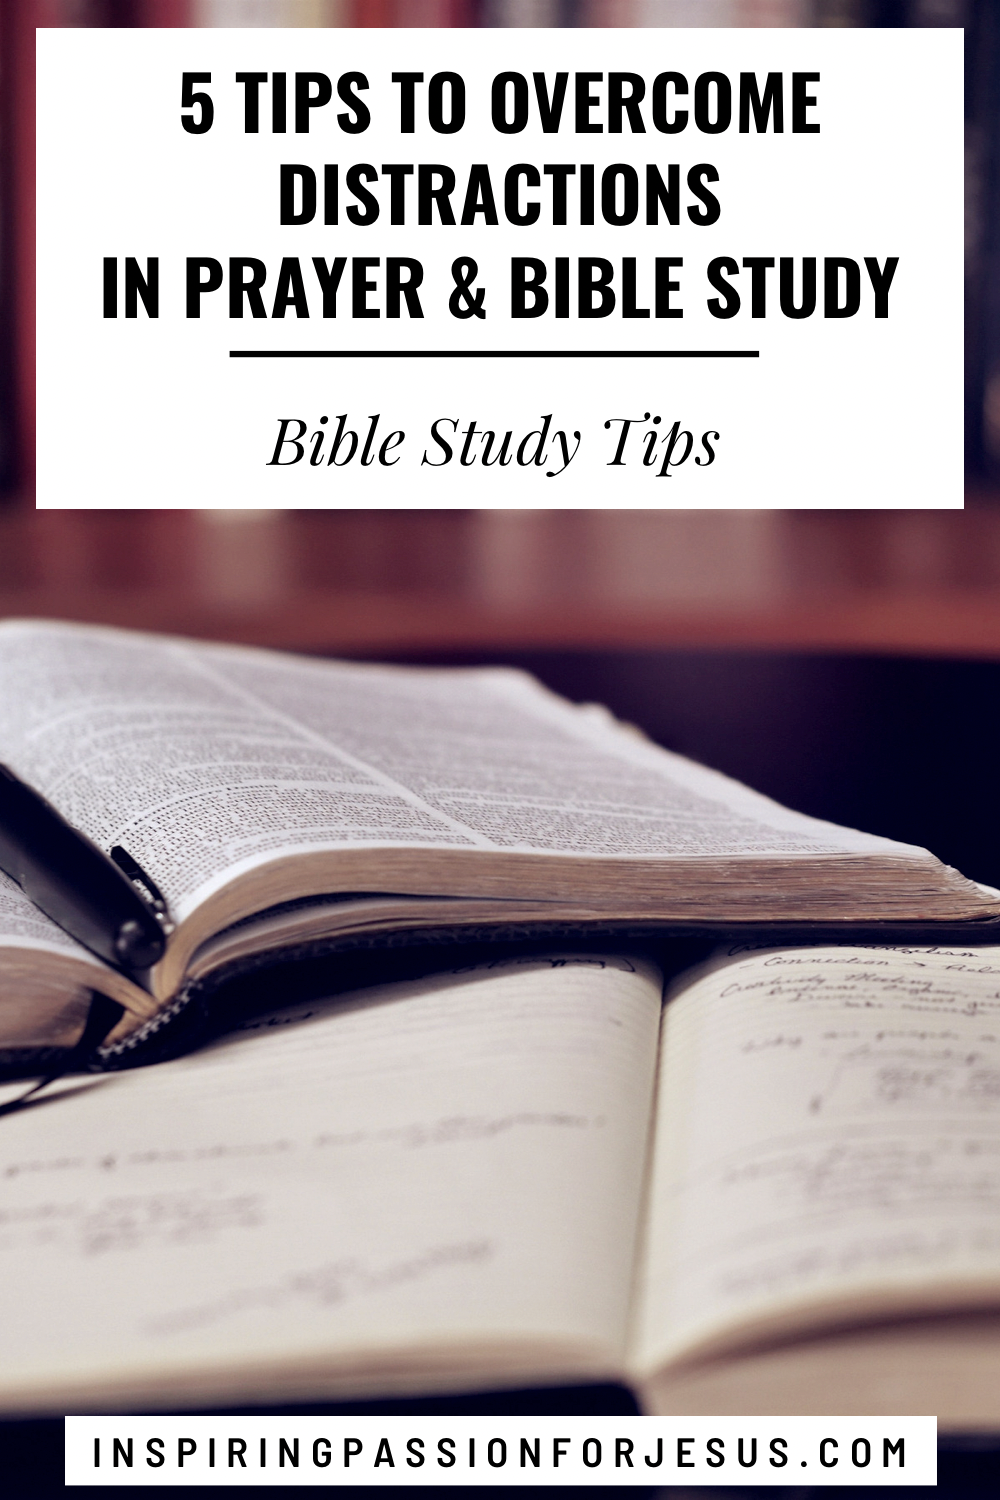 Five Tips to Overcome Distractions in Prayer and Bible Study (title image)